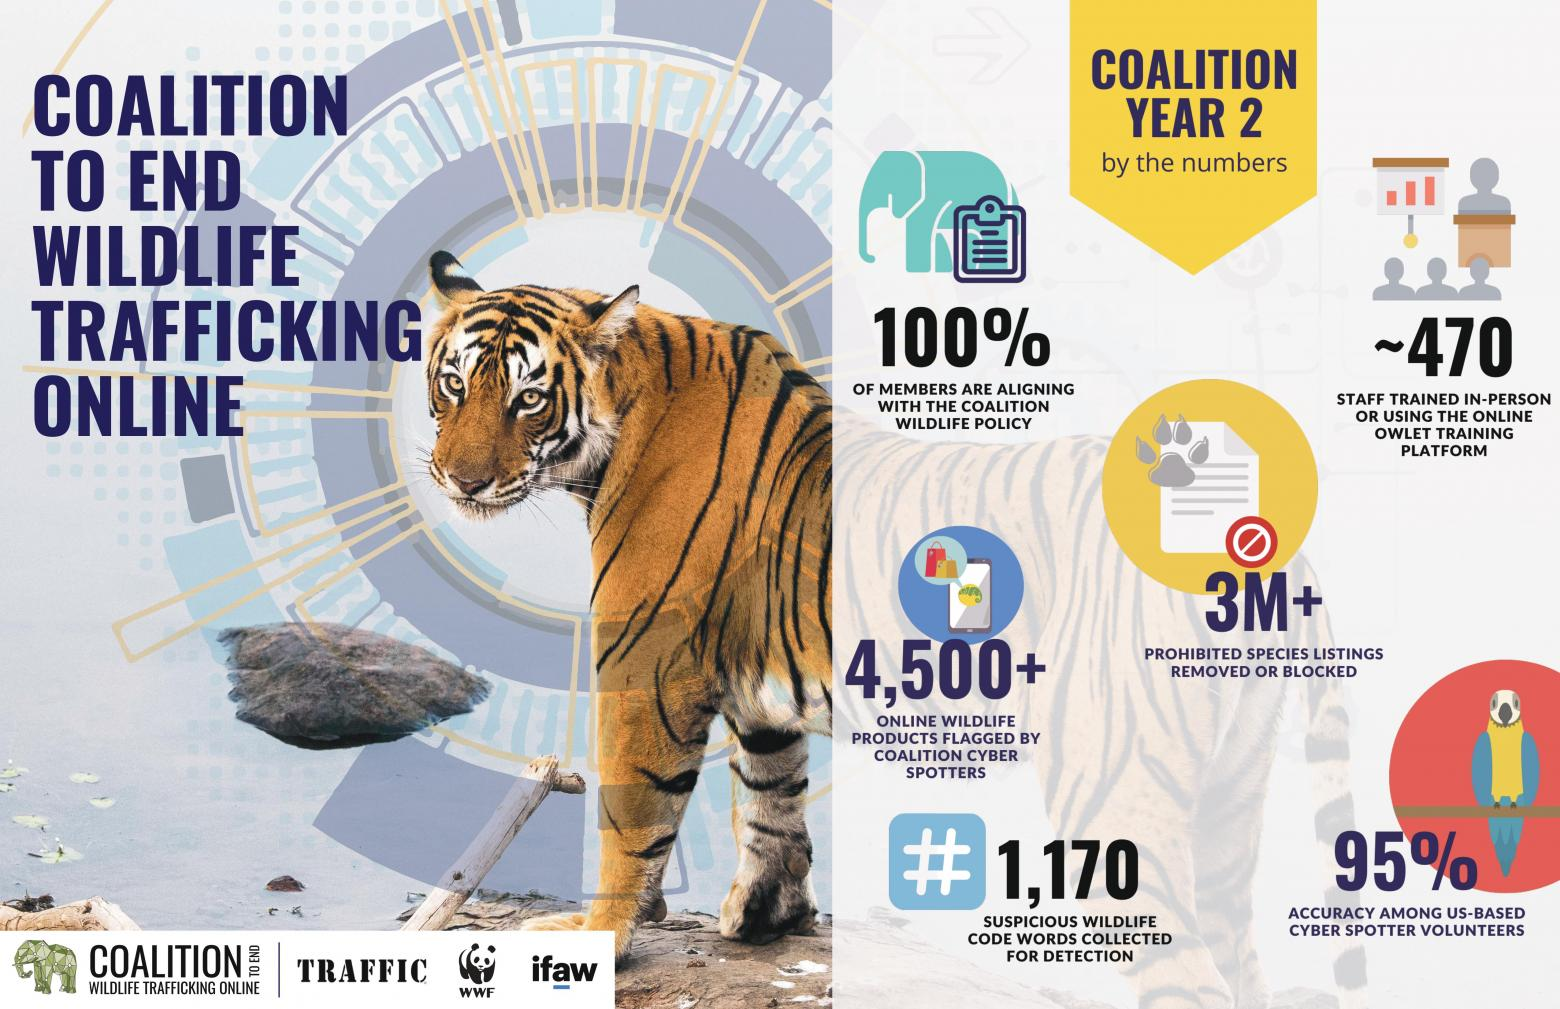 Coalition to End Wildlife Trafficking Online